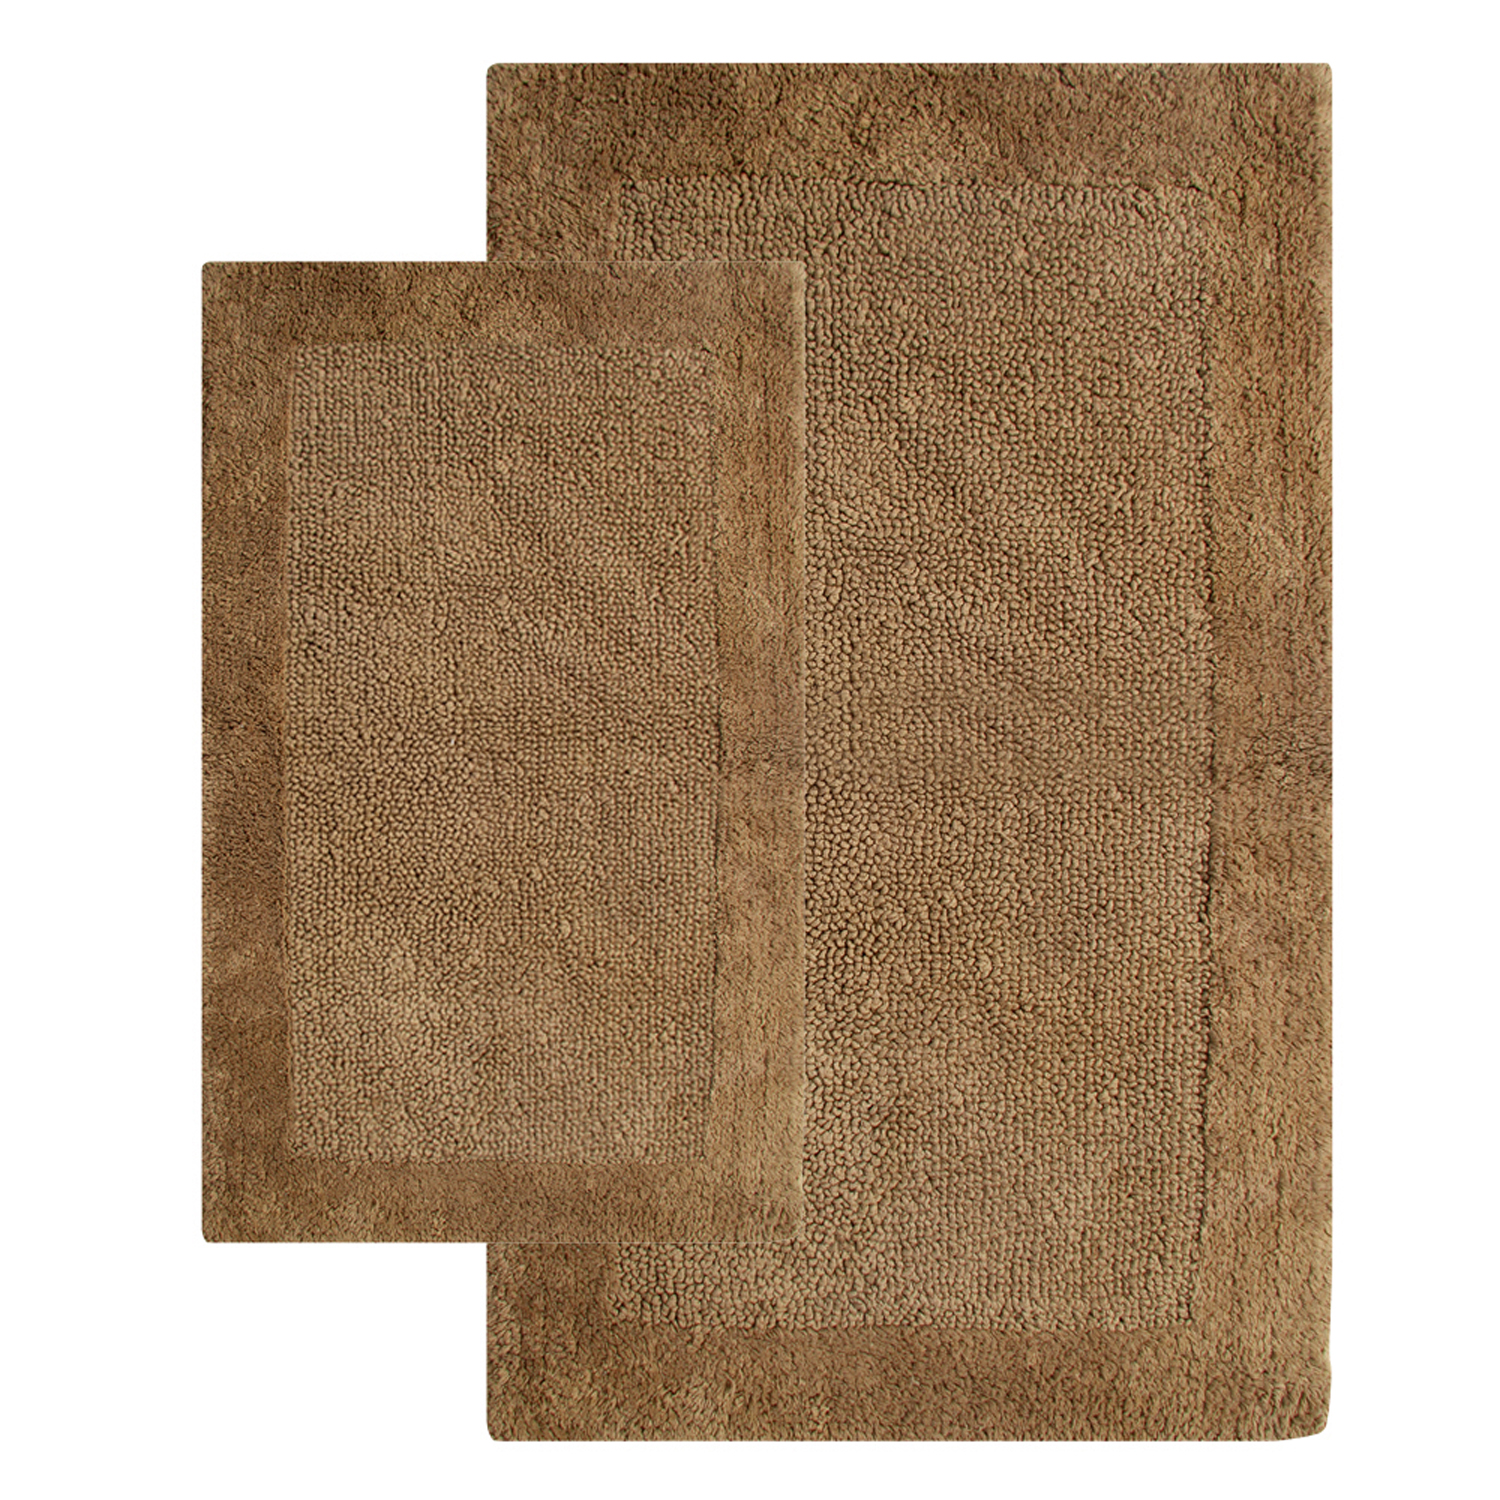 2-Piece Bella Napoli Bath Rug Set